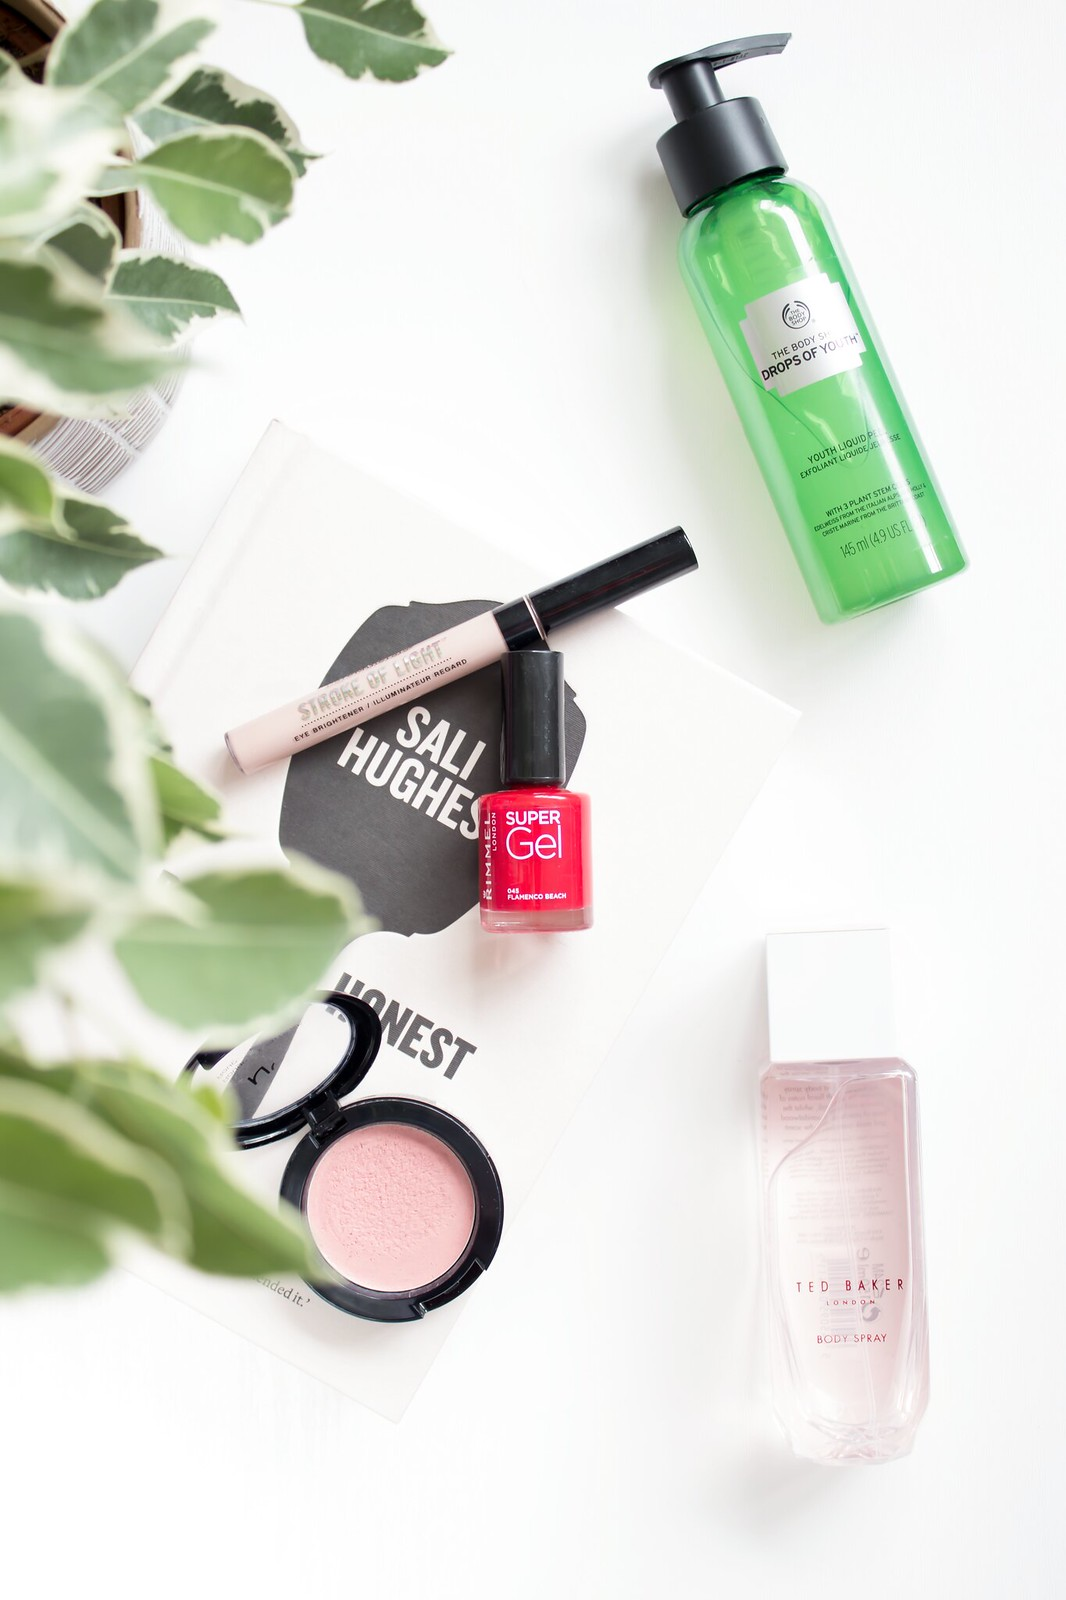 My Current Beauty Top Picks #1